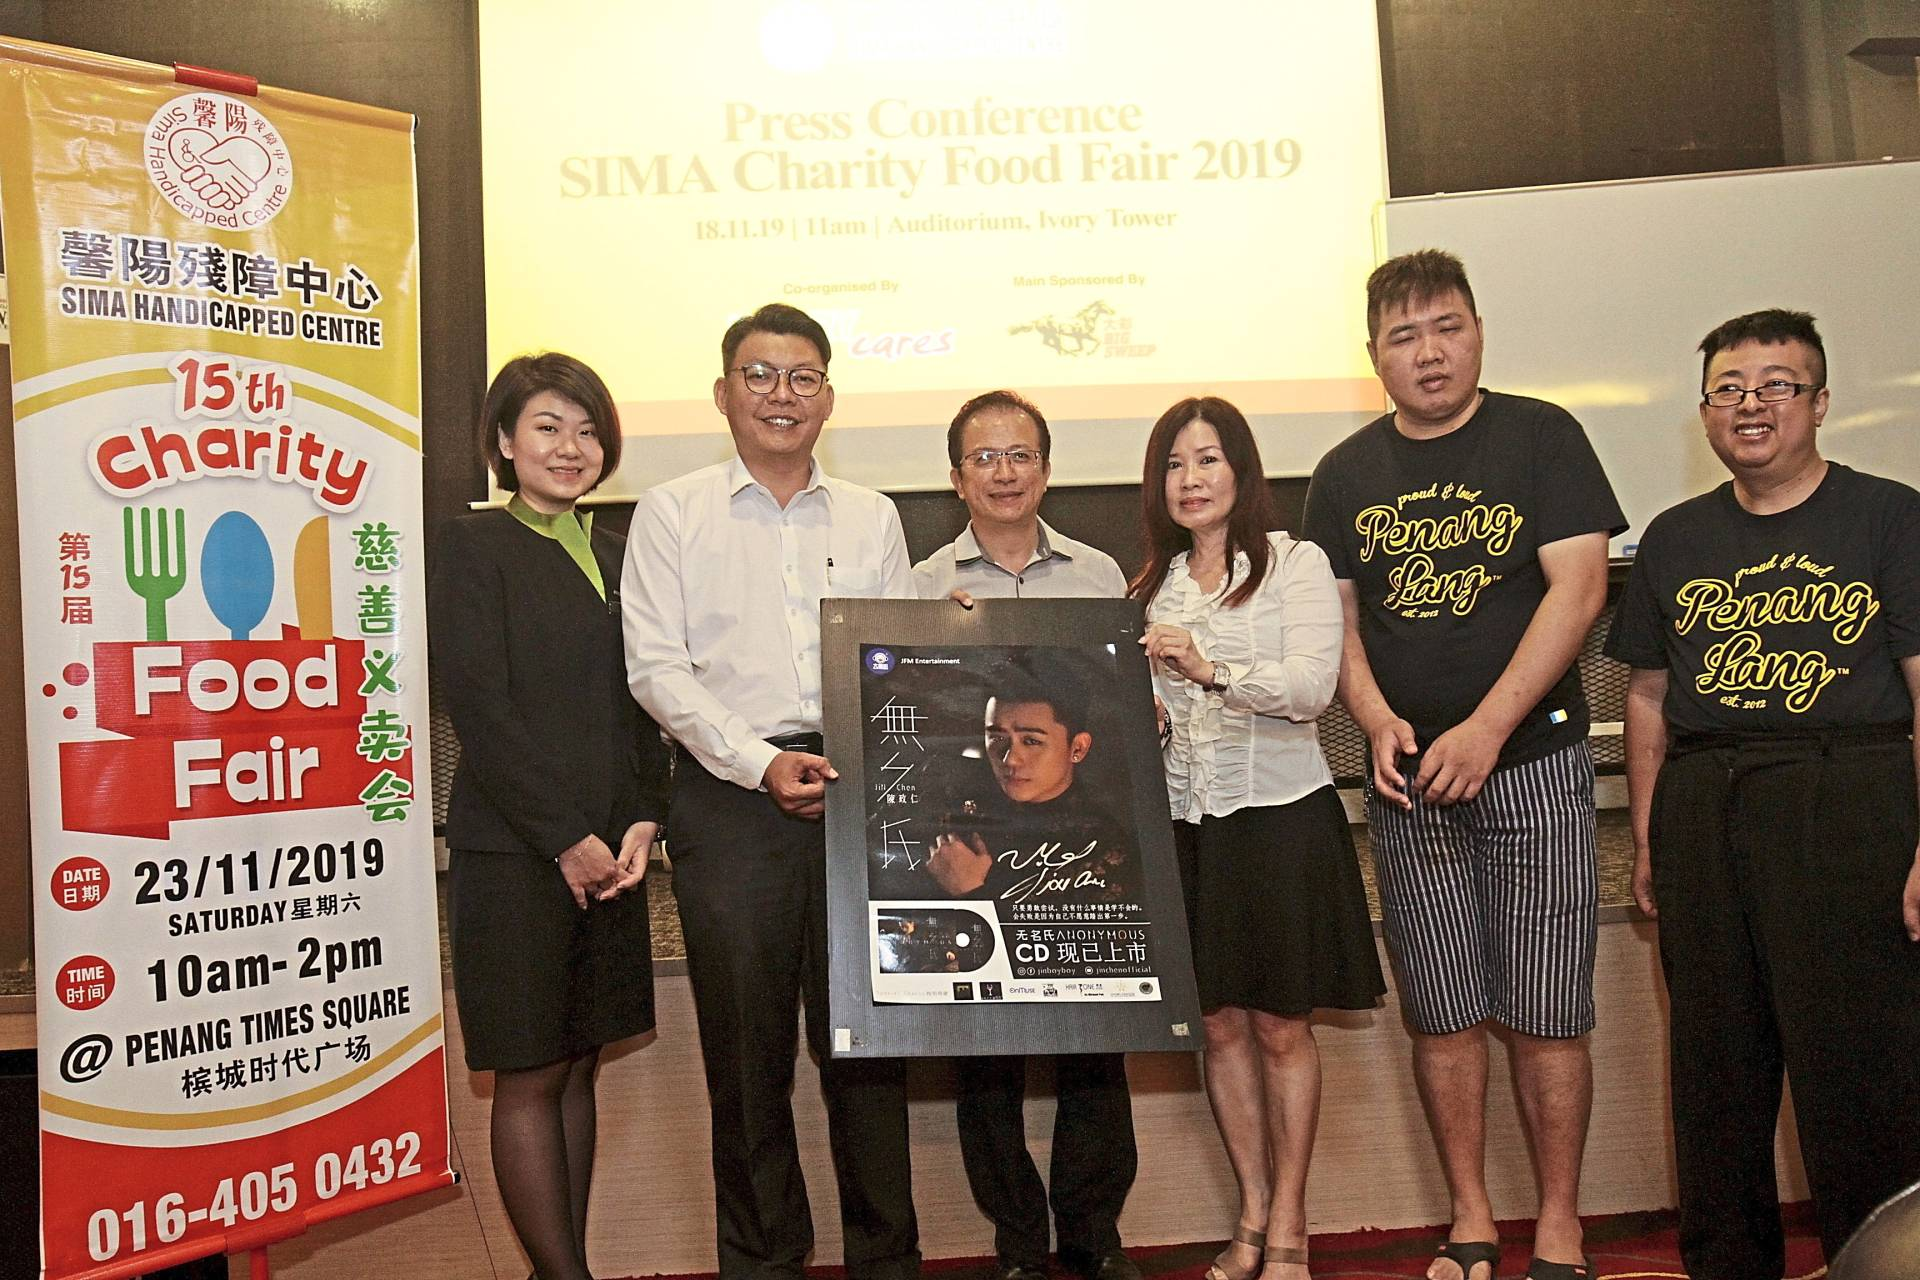 Food fair aimed at raising funds for the disabled